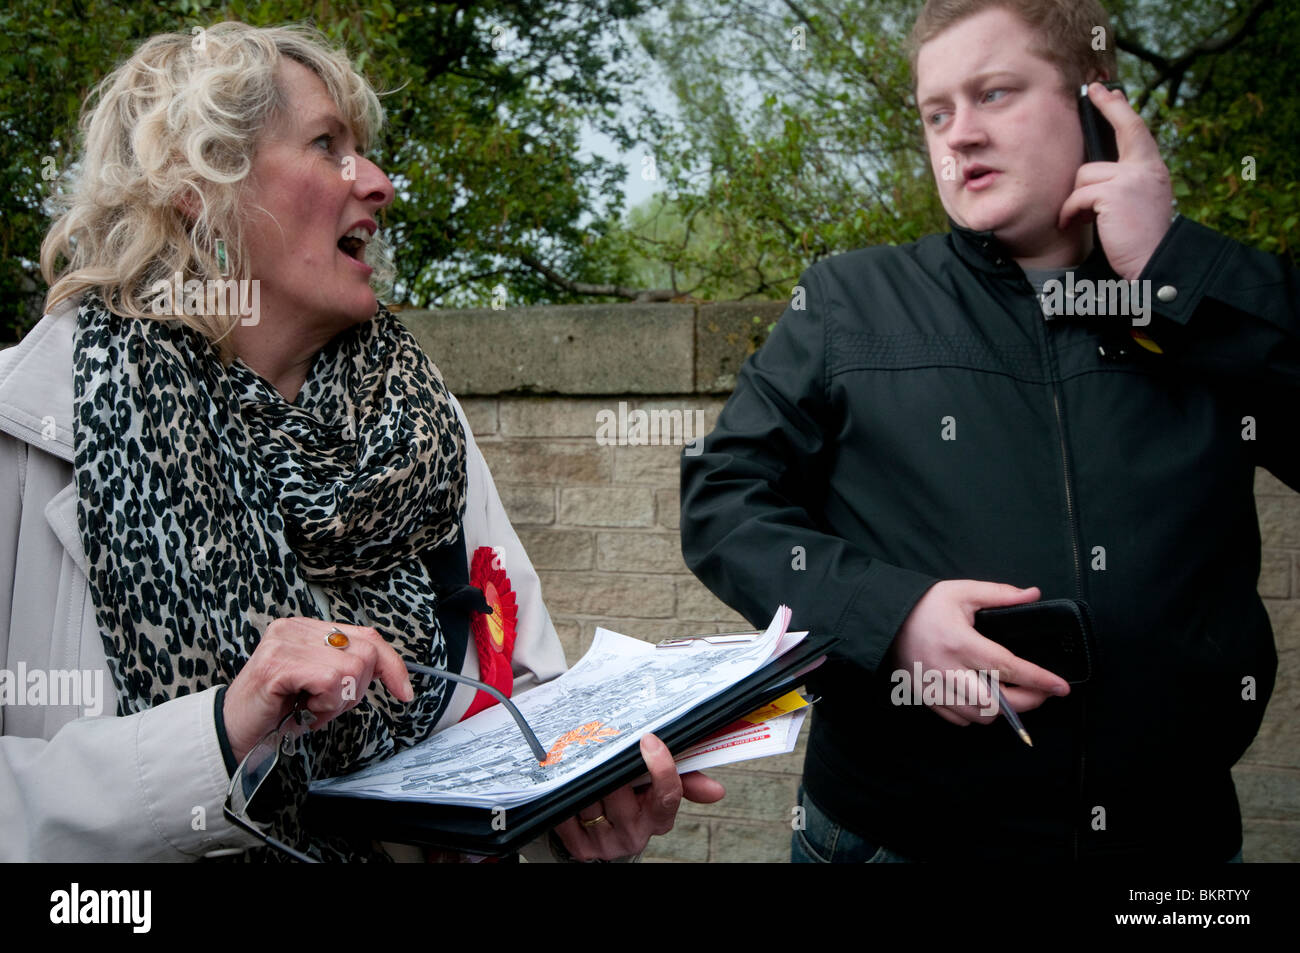 Labour  Party members and candidate Jane Thomas defending the marginal seat of Keighley in the 2010 General Election - Stock Image